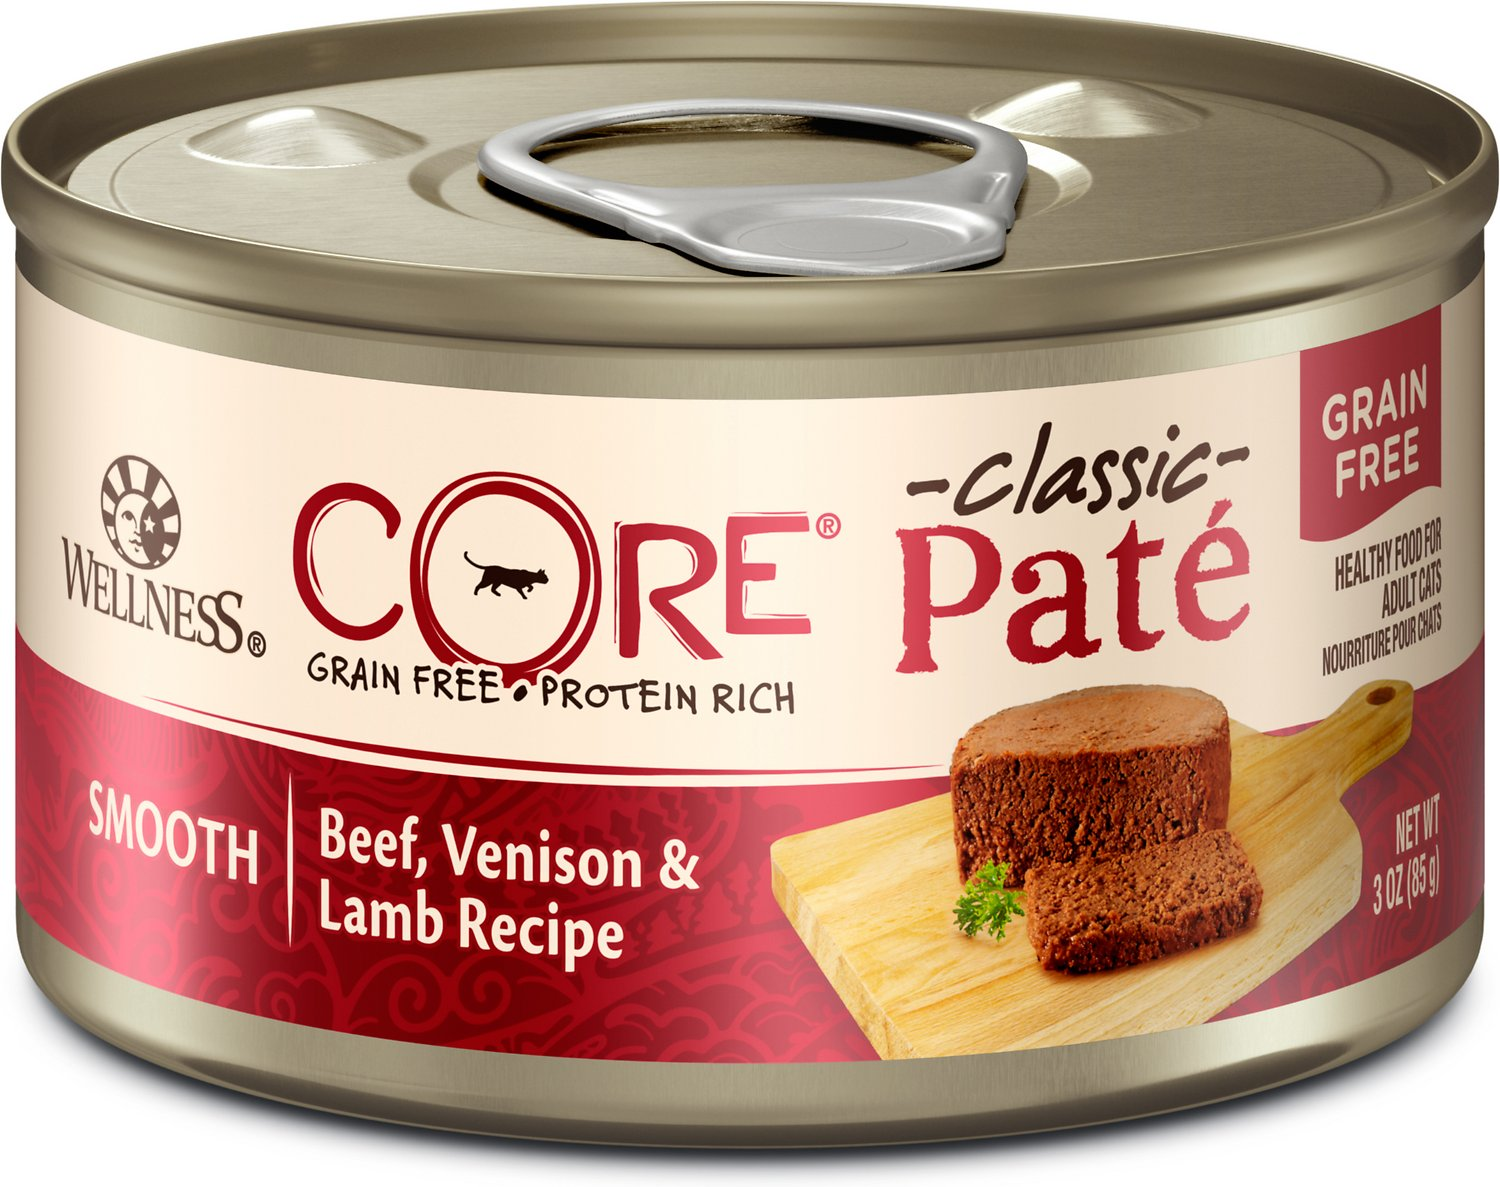 Wellness Core Grain Free Canned Cat Food Reviews